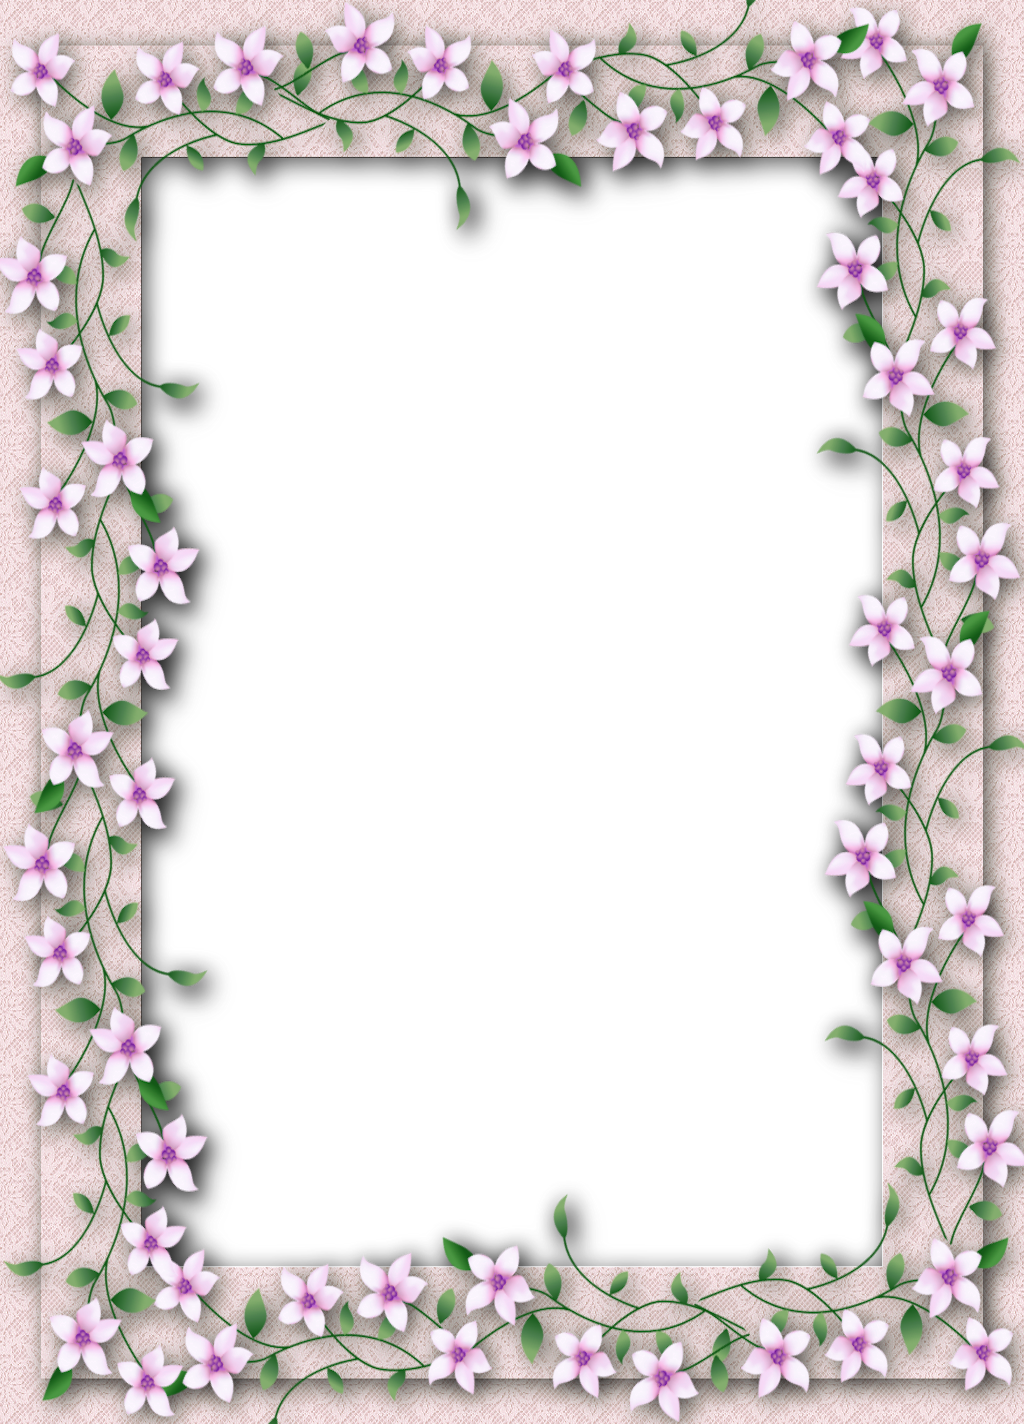 Delicate flower clipart black and white Delicate PNG Transparent Flower Frame   Gallery Yopriceville - High ... black and white